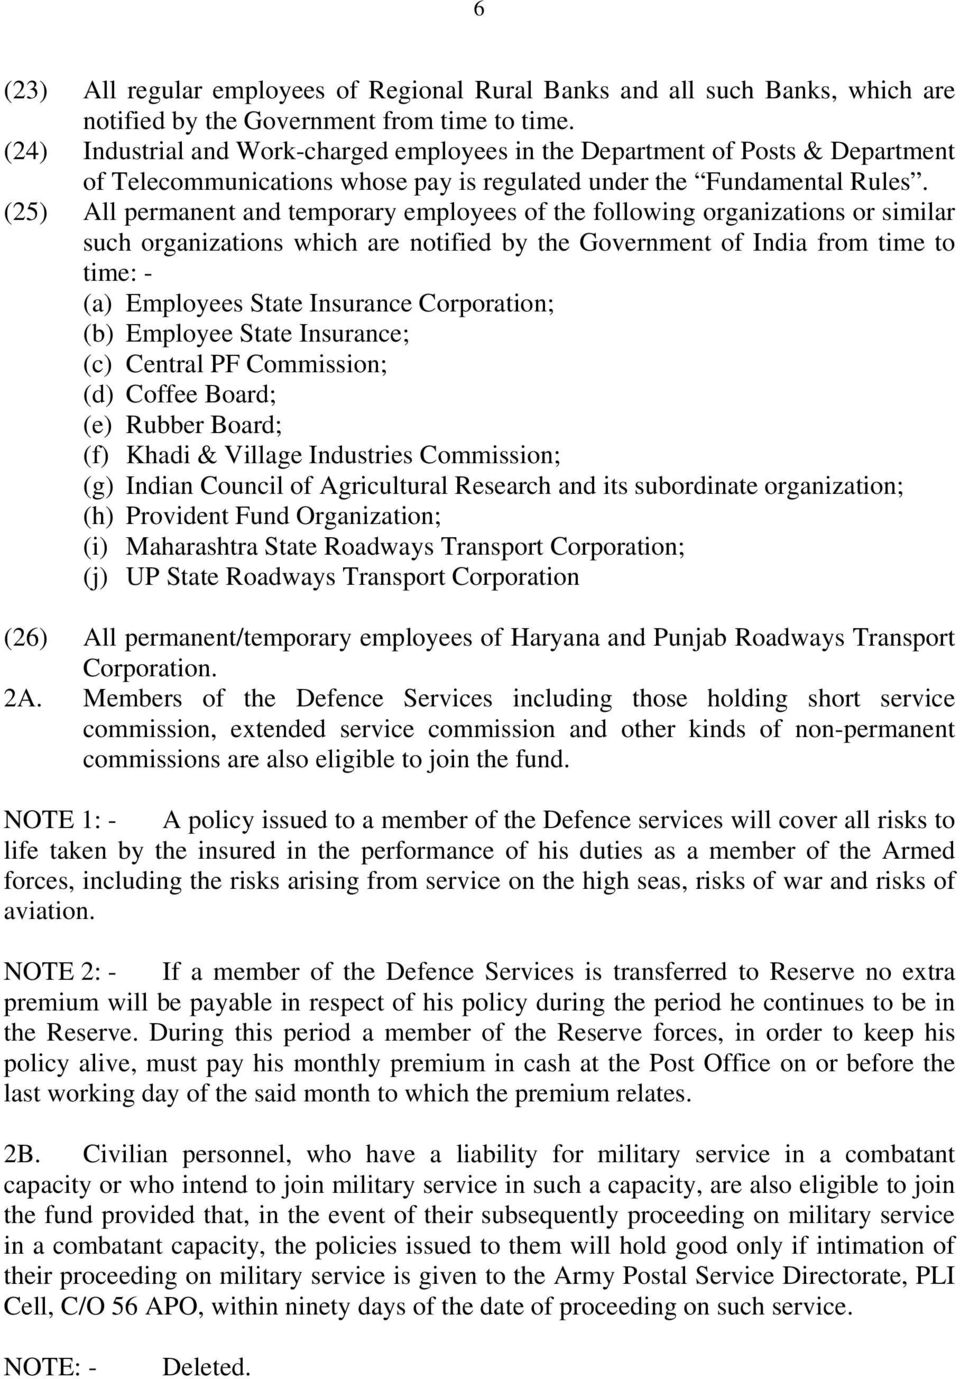 (25) All permanent and temporary employees of the following organizations or similar such organizations which are notified by the Government of India from time to time: - (a) Employees State